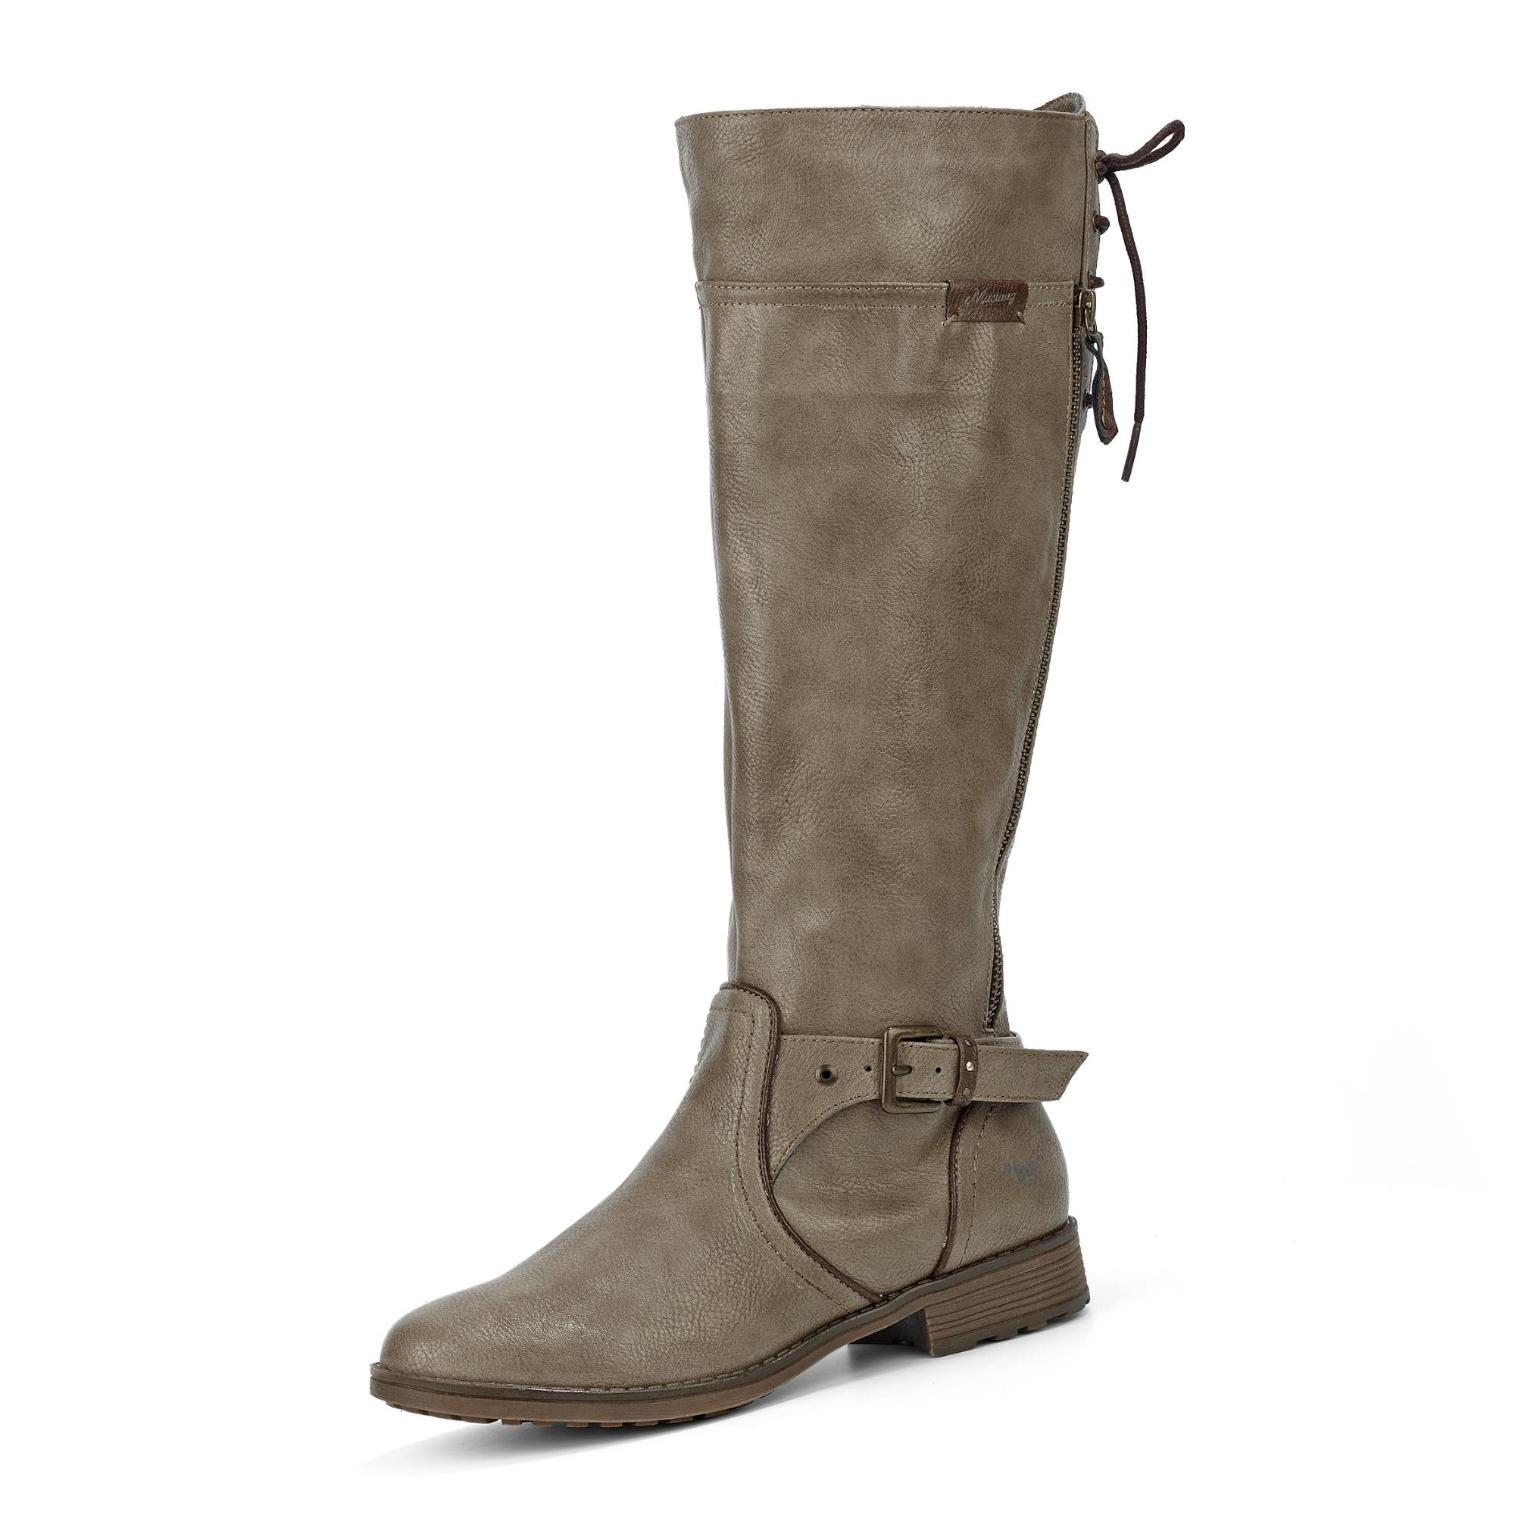 Mustang Stiefel in Farbe Farbe Farbe taupe günstig online kaufen 7c0ce6